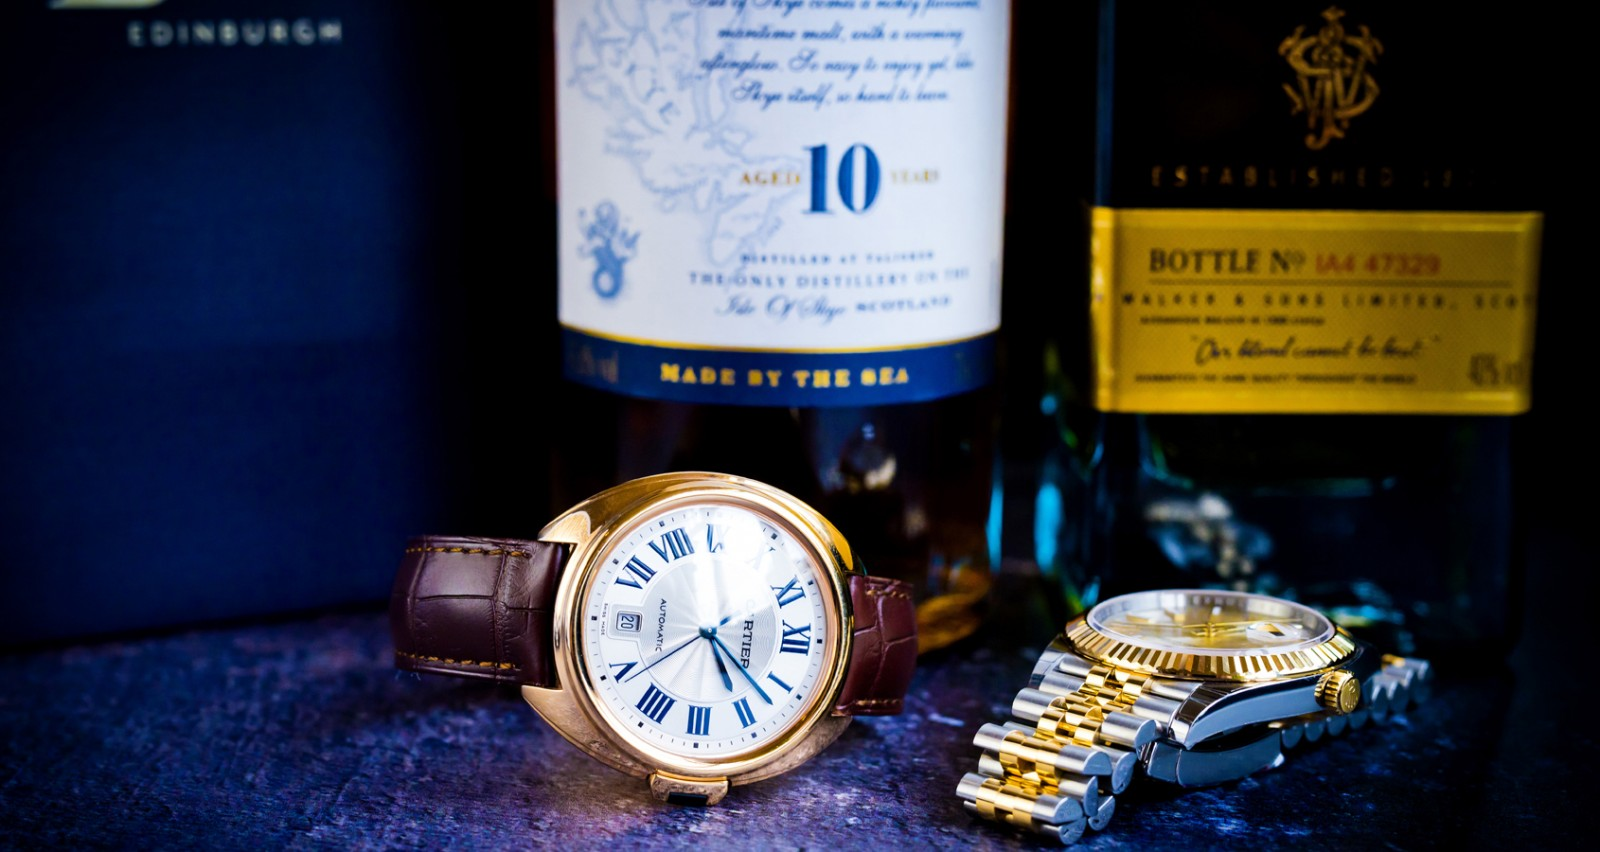 Whisky and watches event